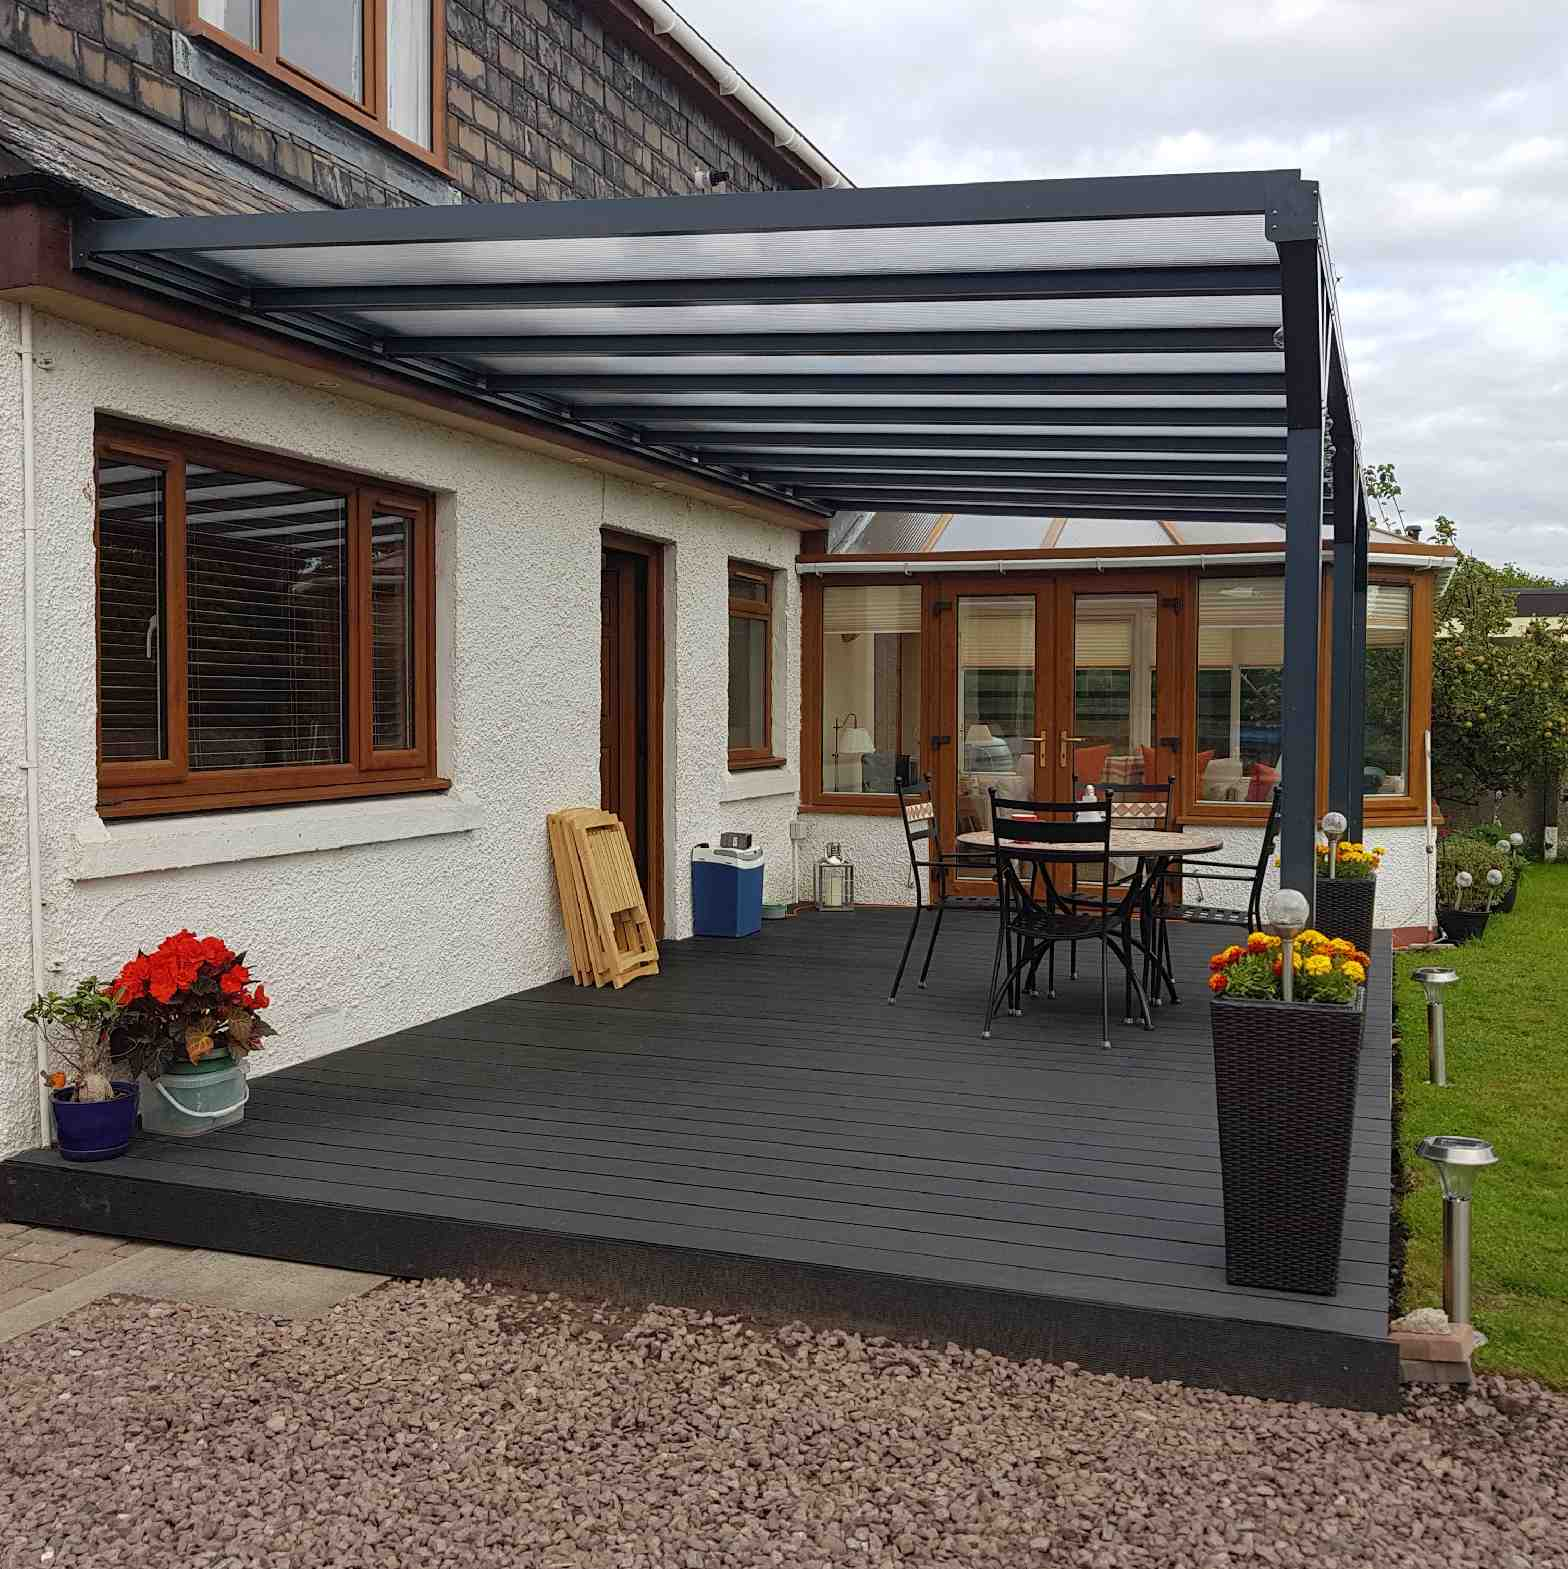 Buy Omega Verandah, Anthracite Grey, 6mm Glass Clear Plate Polycarbonate Glazing - 10.5m (W) x 2.0m (P), (5) Supporting Posts online today